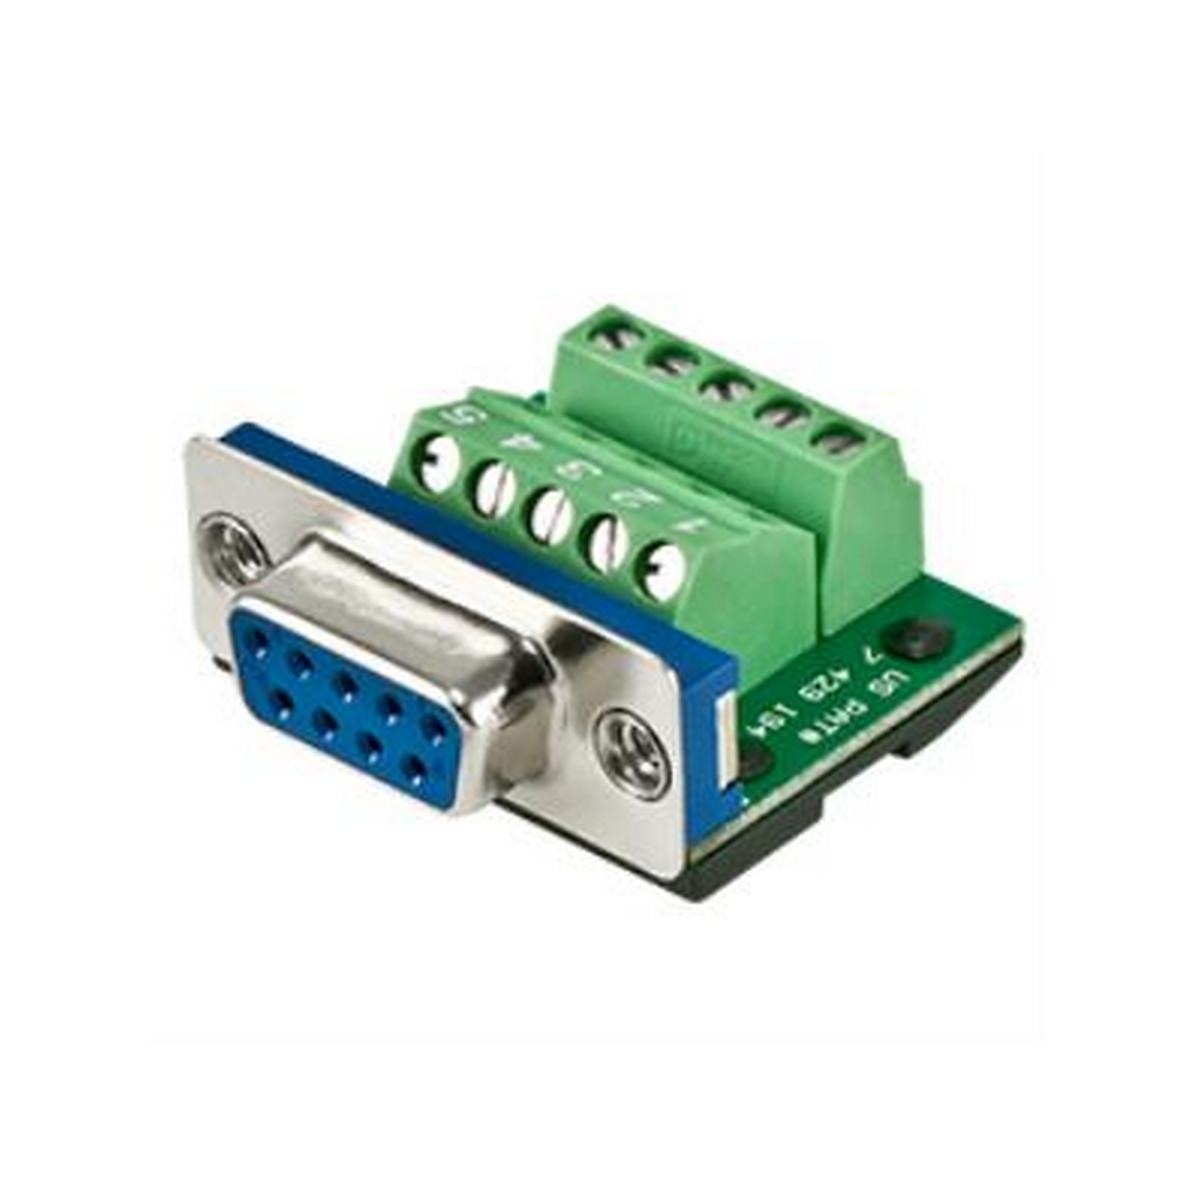 BTX CD-MX9F  BTX MaxBlox DB9 Female to Terminal Block Connector.